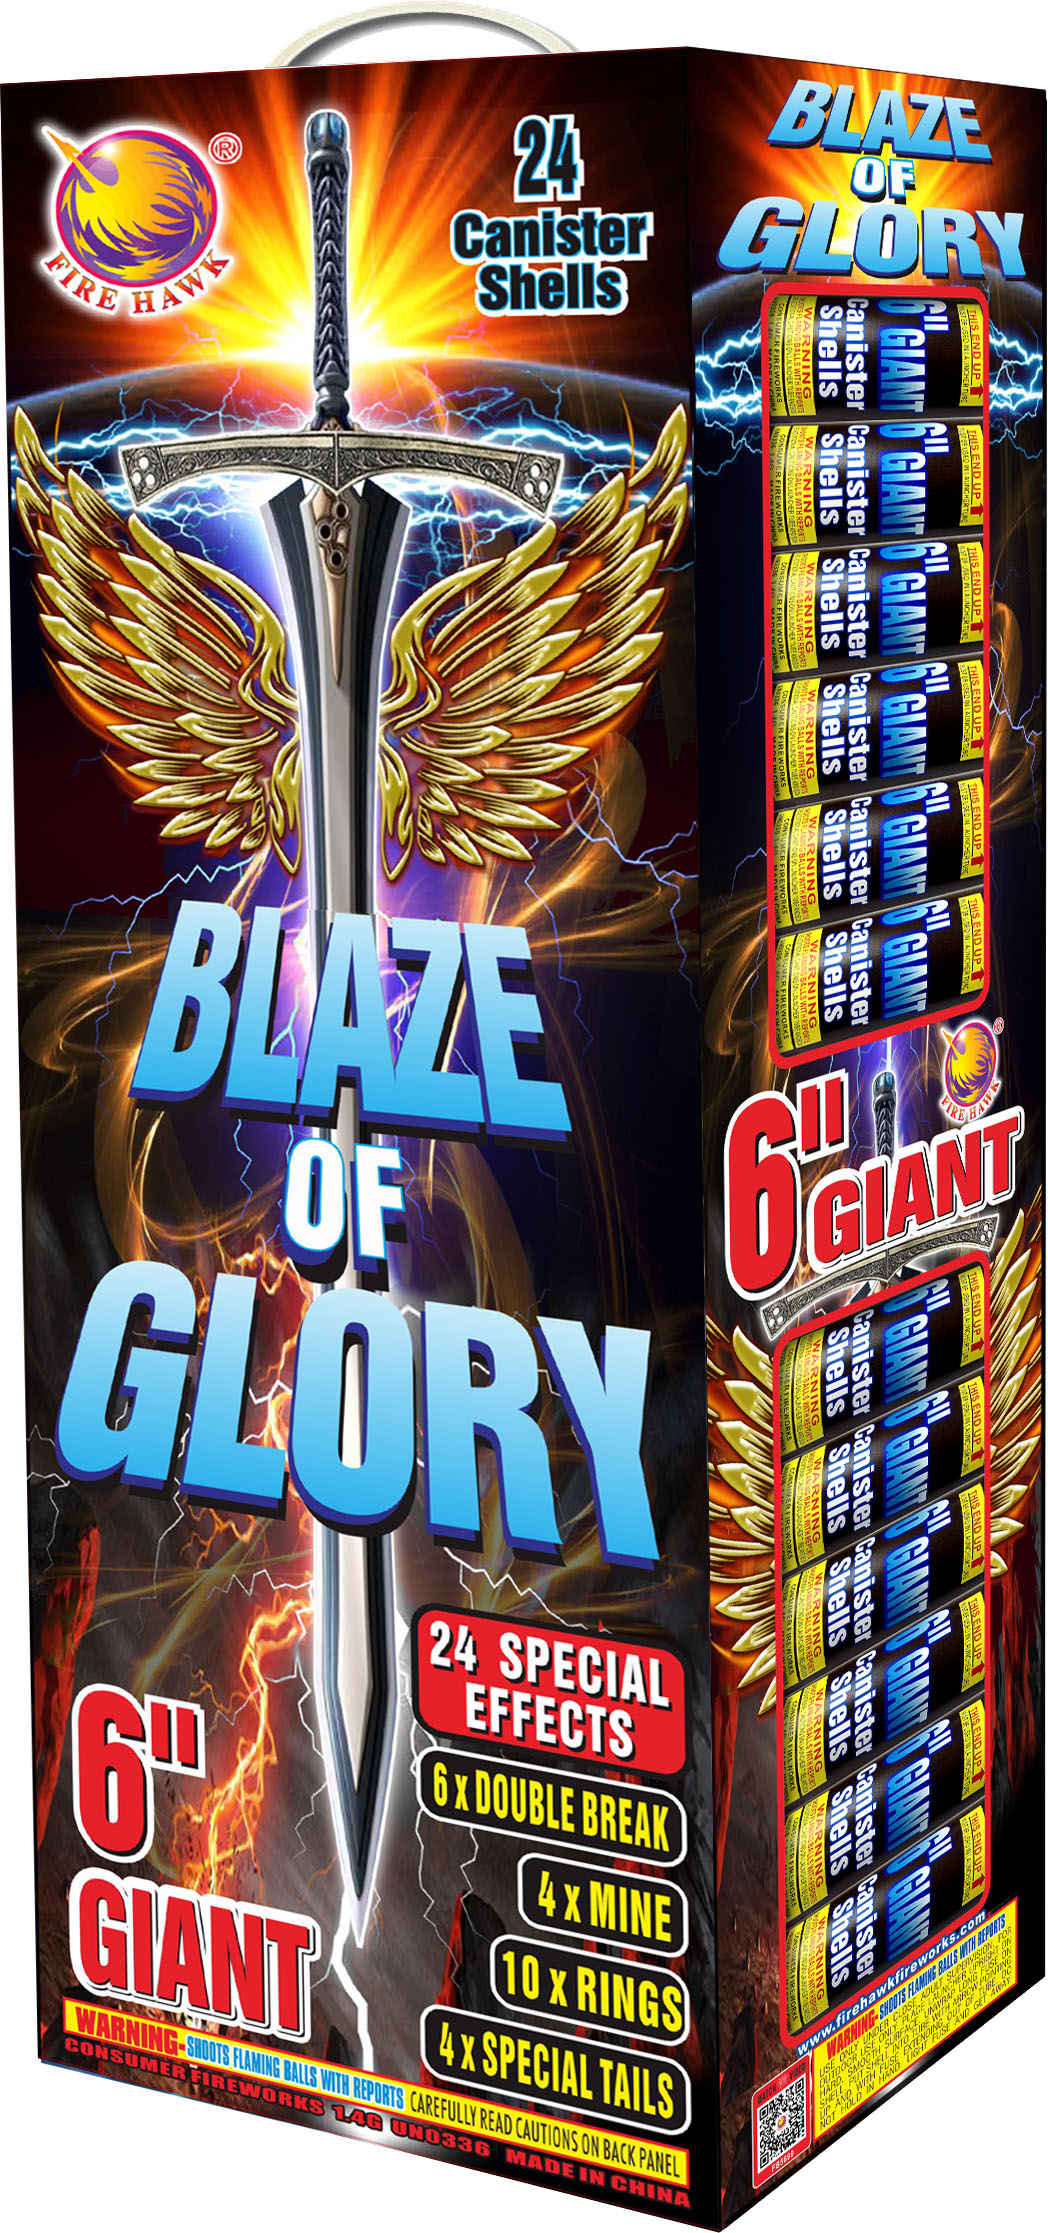 FB5700 Blaze of Glory